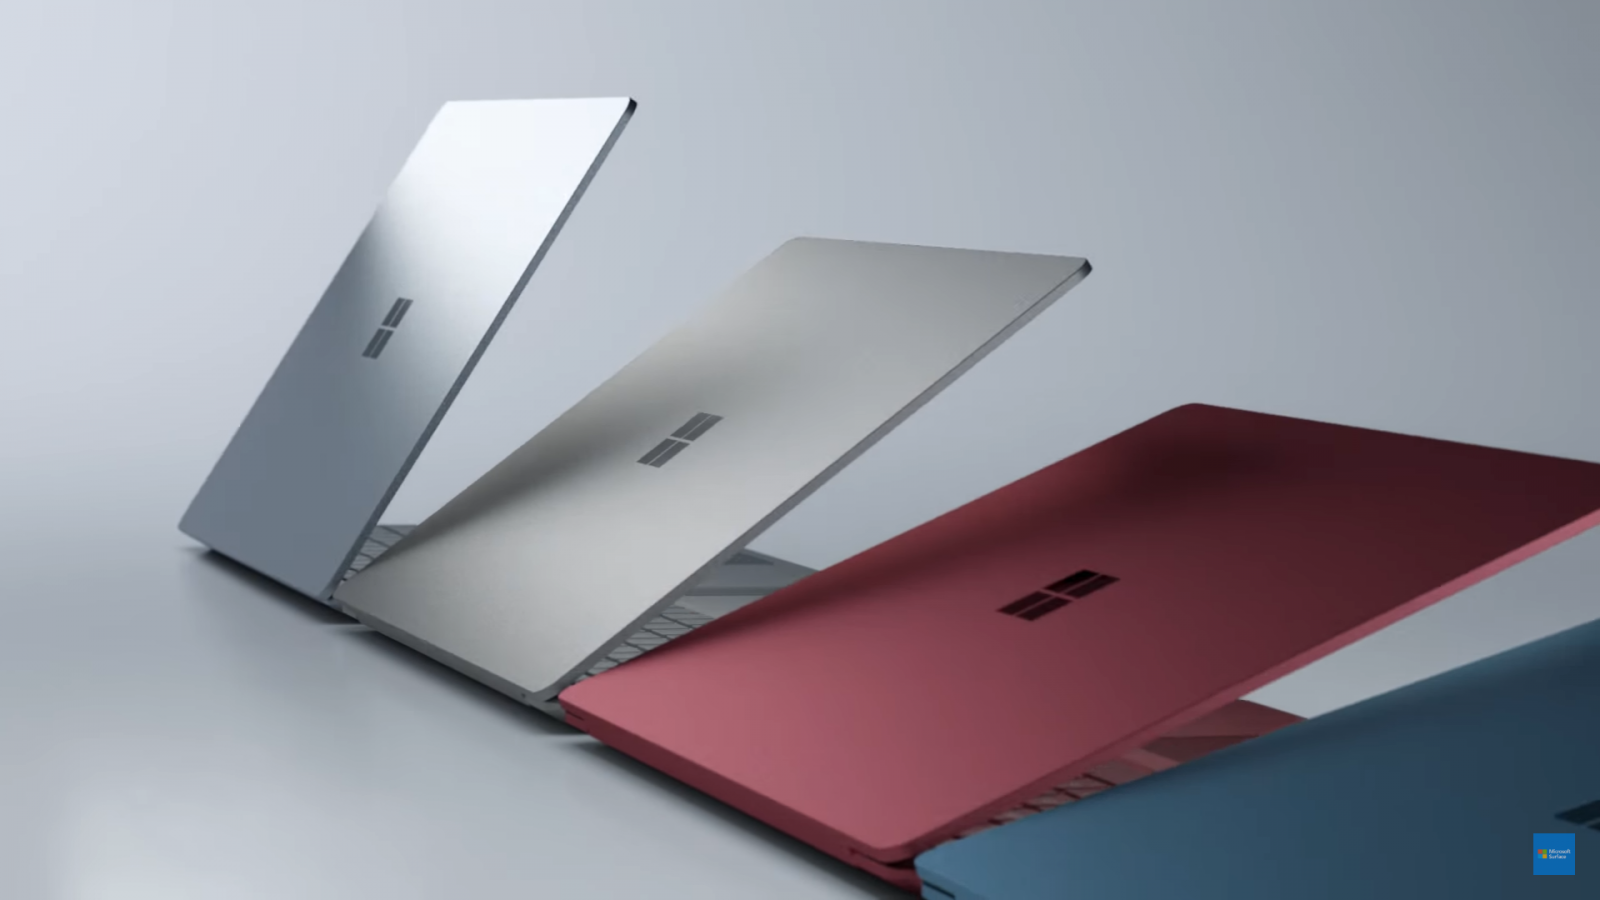 Microsoft unveils Surface Laptop with price tag of $999